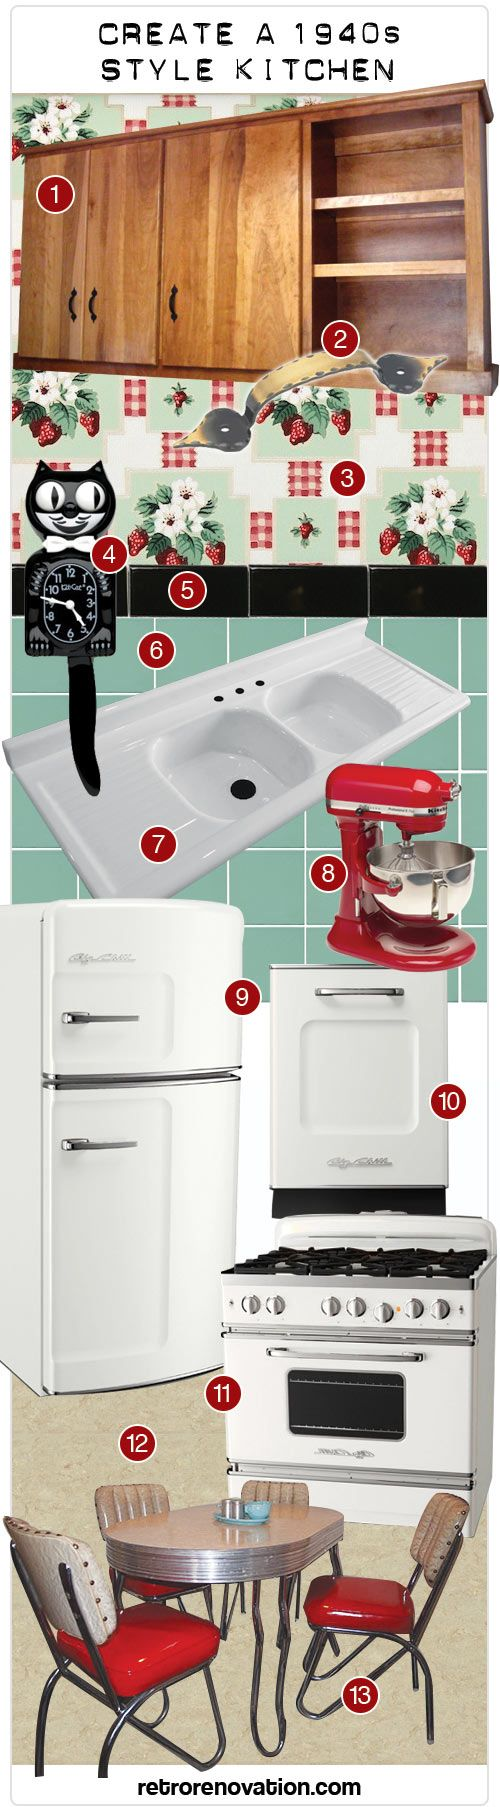 There are many ways to retro [<- I just love it when I used that as a verb], including 1940s style. Lots of readers seem to be totally nuts over 1940s kitchen style, so here's my second mood board including resources to create a 1940s or early 1950s style homey comfy sweetheart kitchen. Here's my …